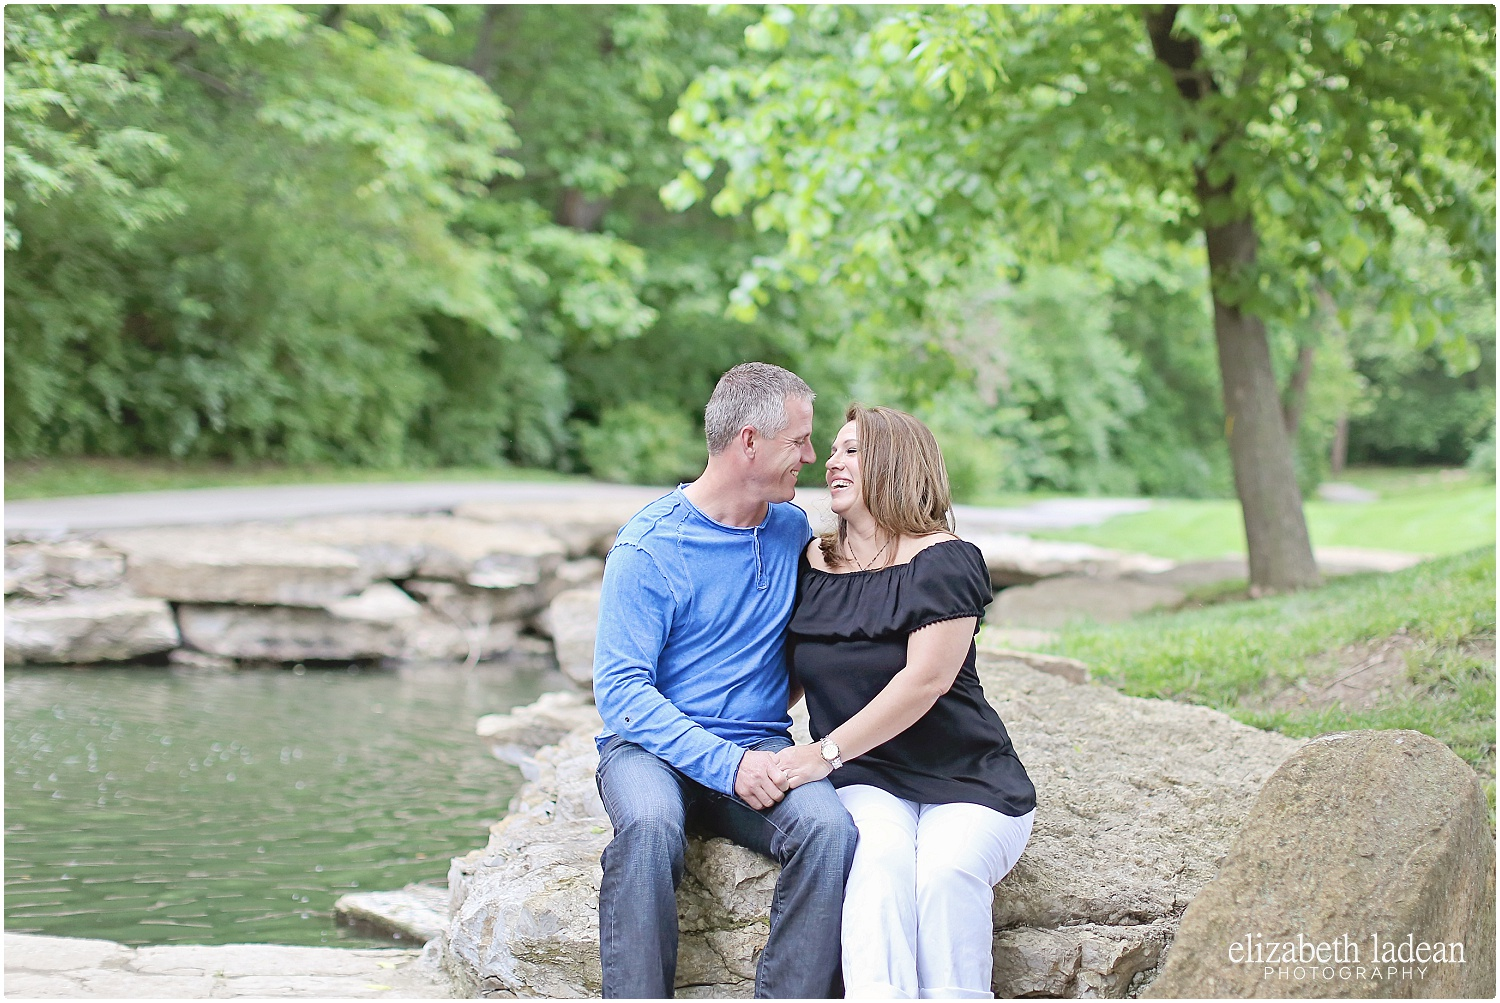 BriarcliffEngagementSession_ElizabethLadeanPhotography-B+R520-_5836.jpg